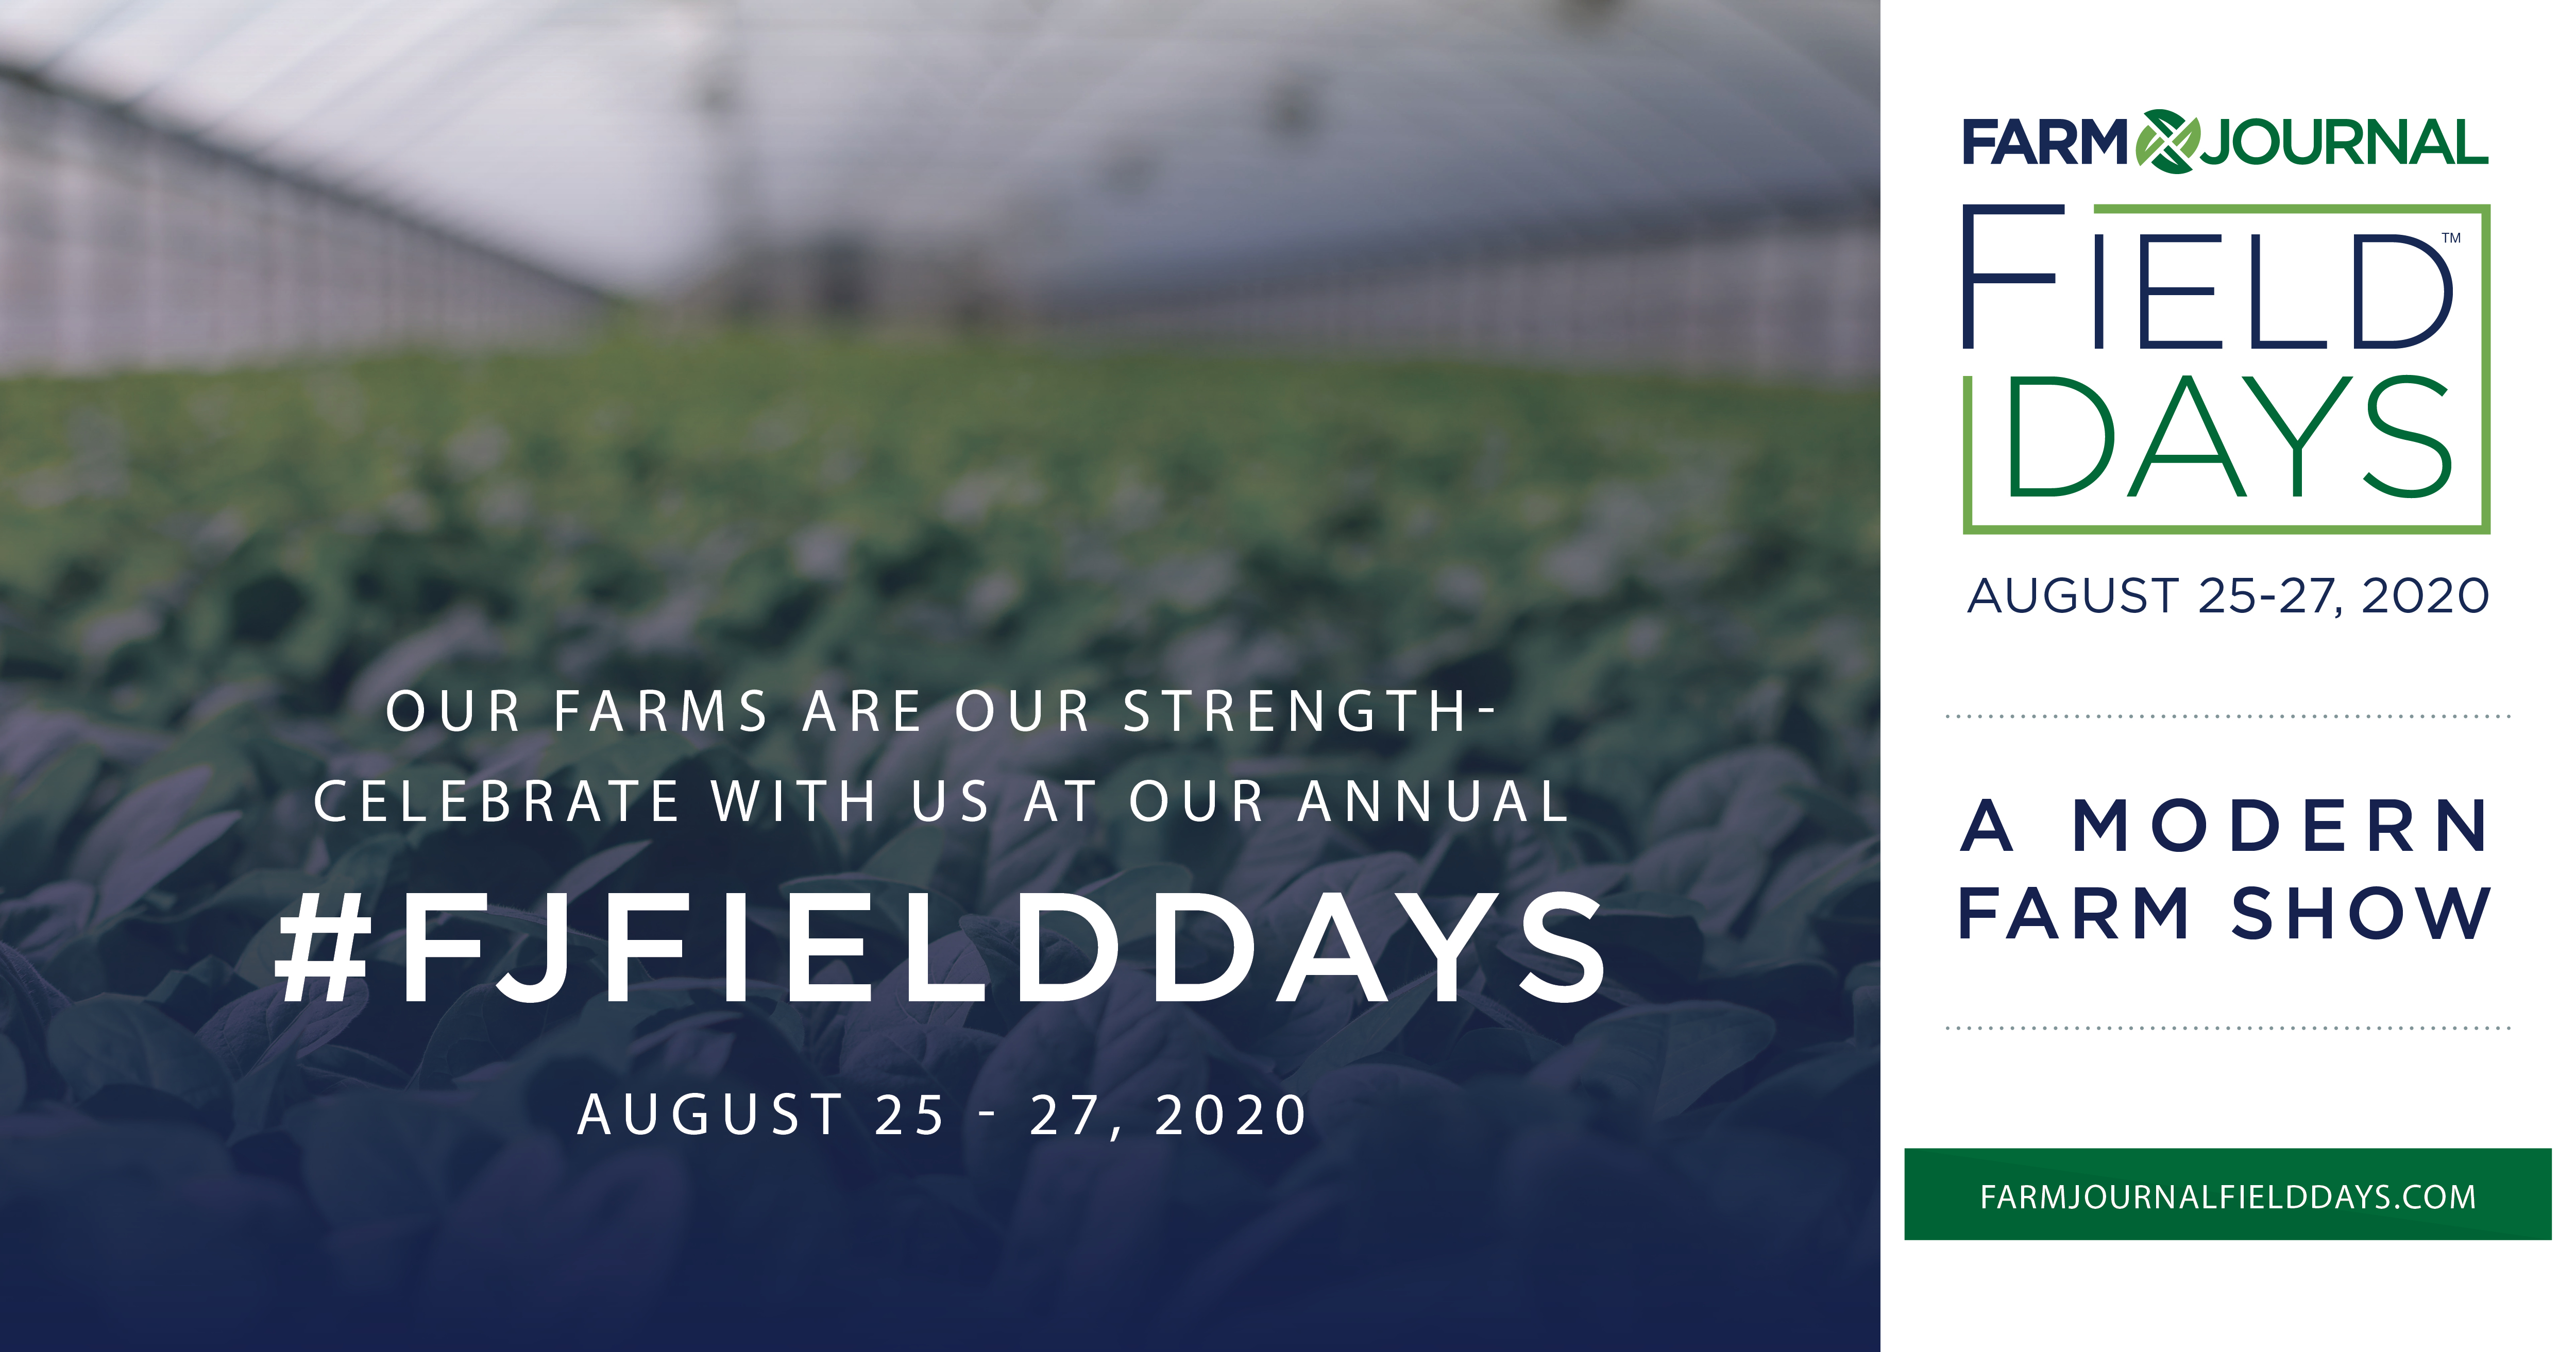 Farm Journal Field Days